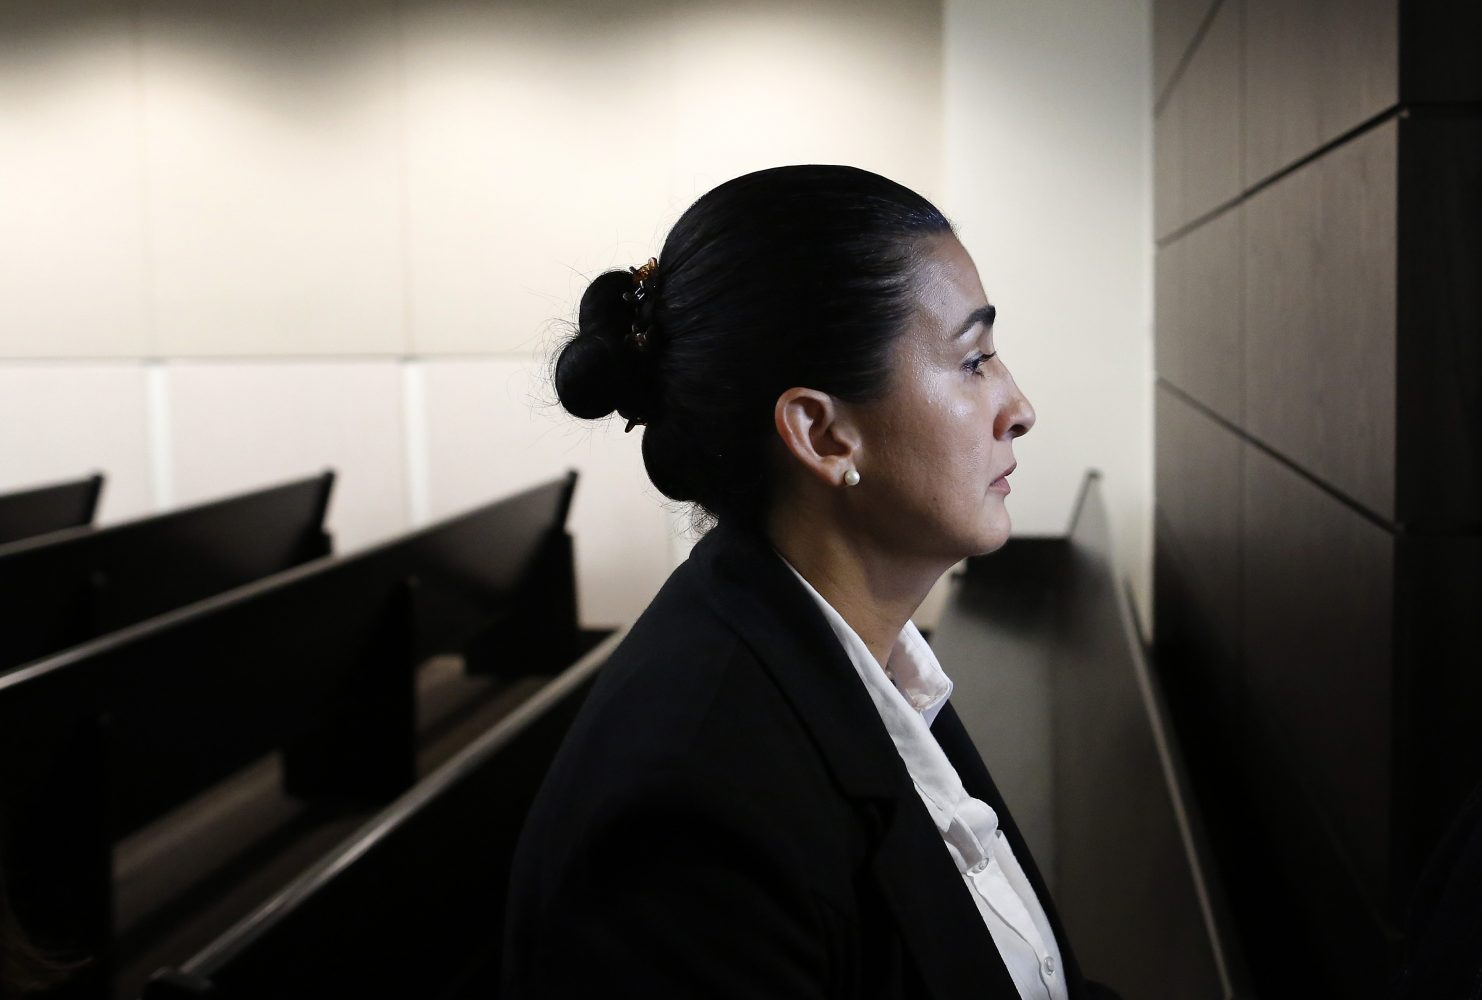 Claudia Aguilar, the mother of Christian Aguilar, leaves the courtroom following the prosecution's opening statements in the case against Pedro Bravo in courtroom 1B of the Alachua County Criminal Justice Center Tuesday, August 5, 2014.  Bravo is accused of murdering her son.  (Doug Finger/The Gainesville Sun/Pool)